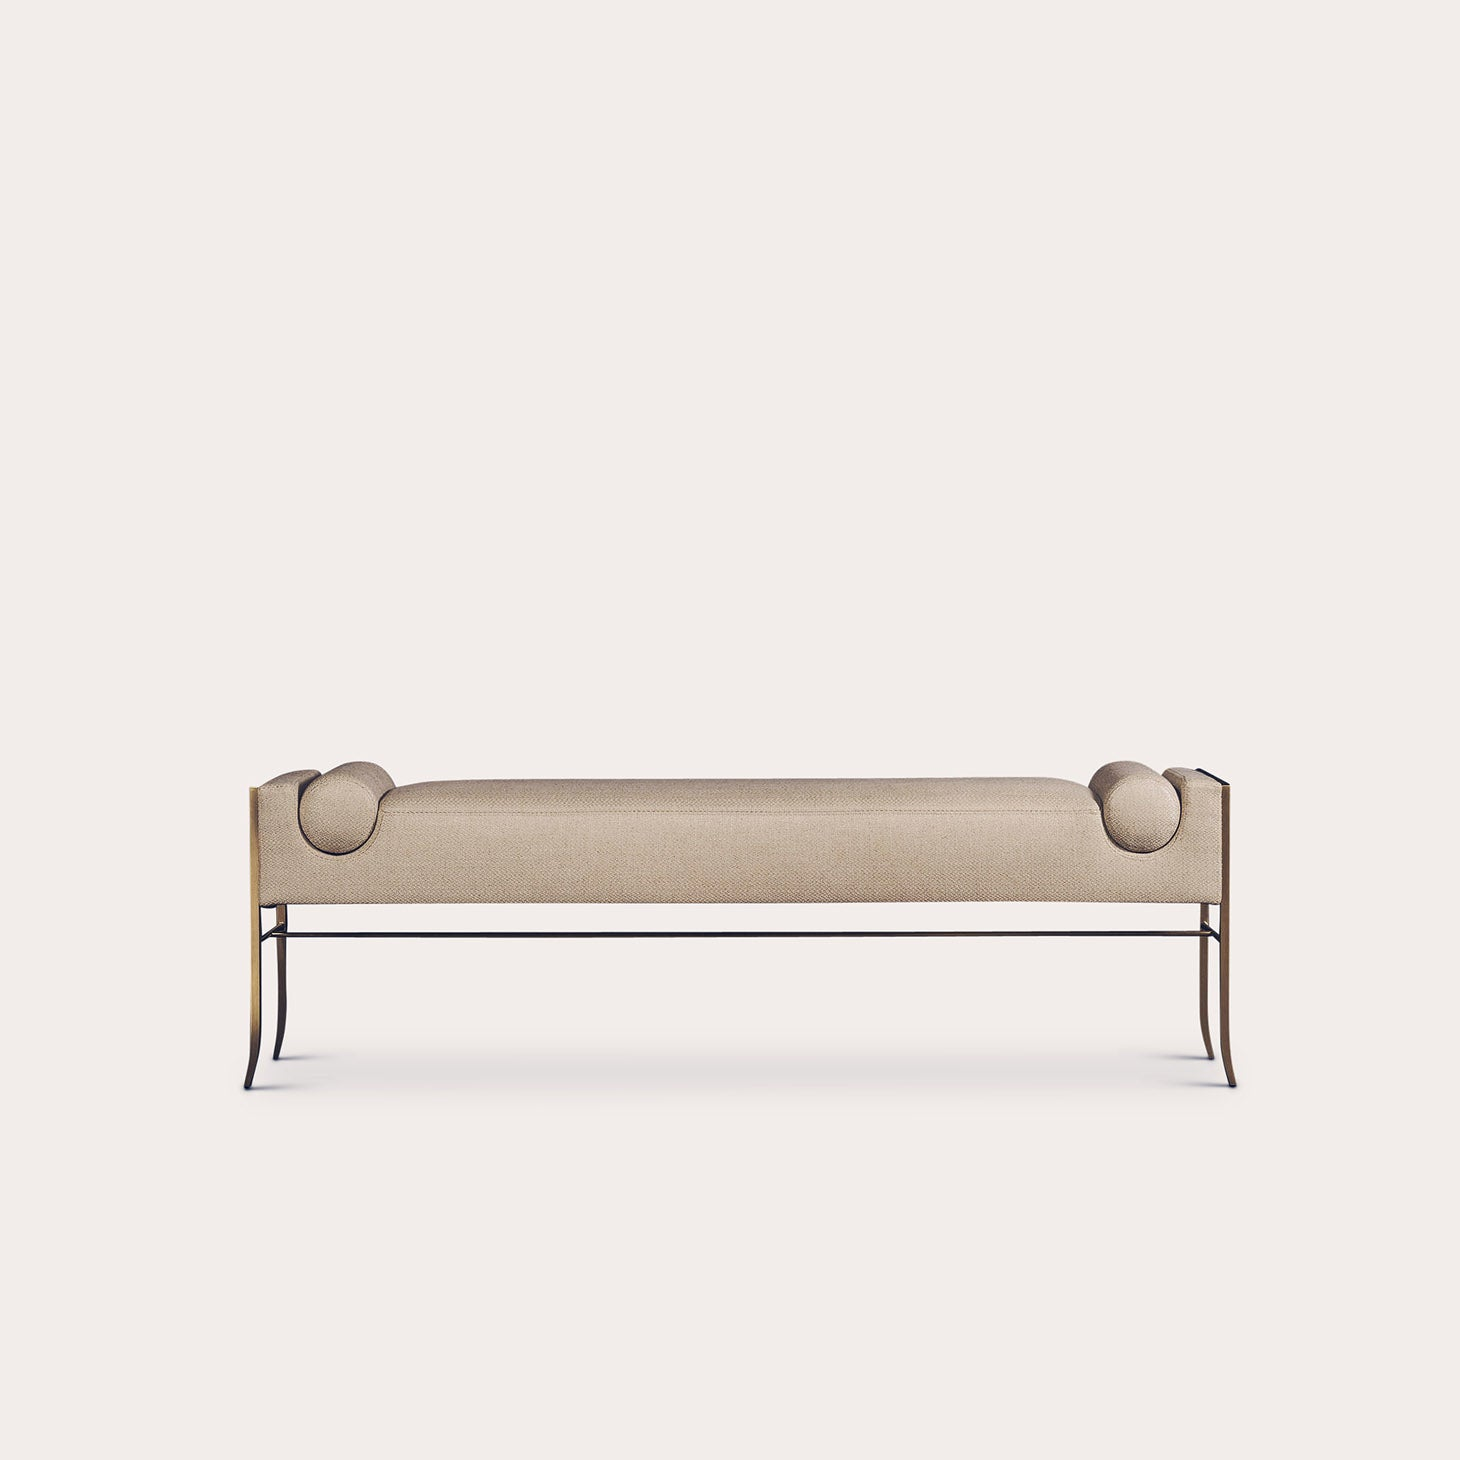 COURTRAI Bench Seating Bruno Moinard Designer Furniture Sku: 773-300-10001